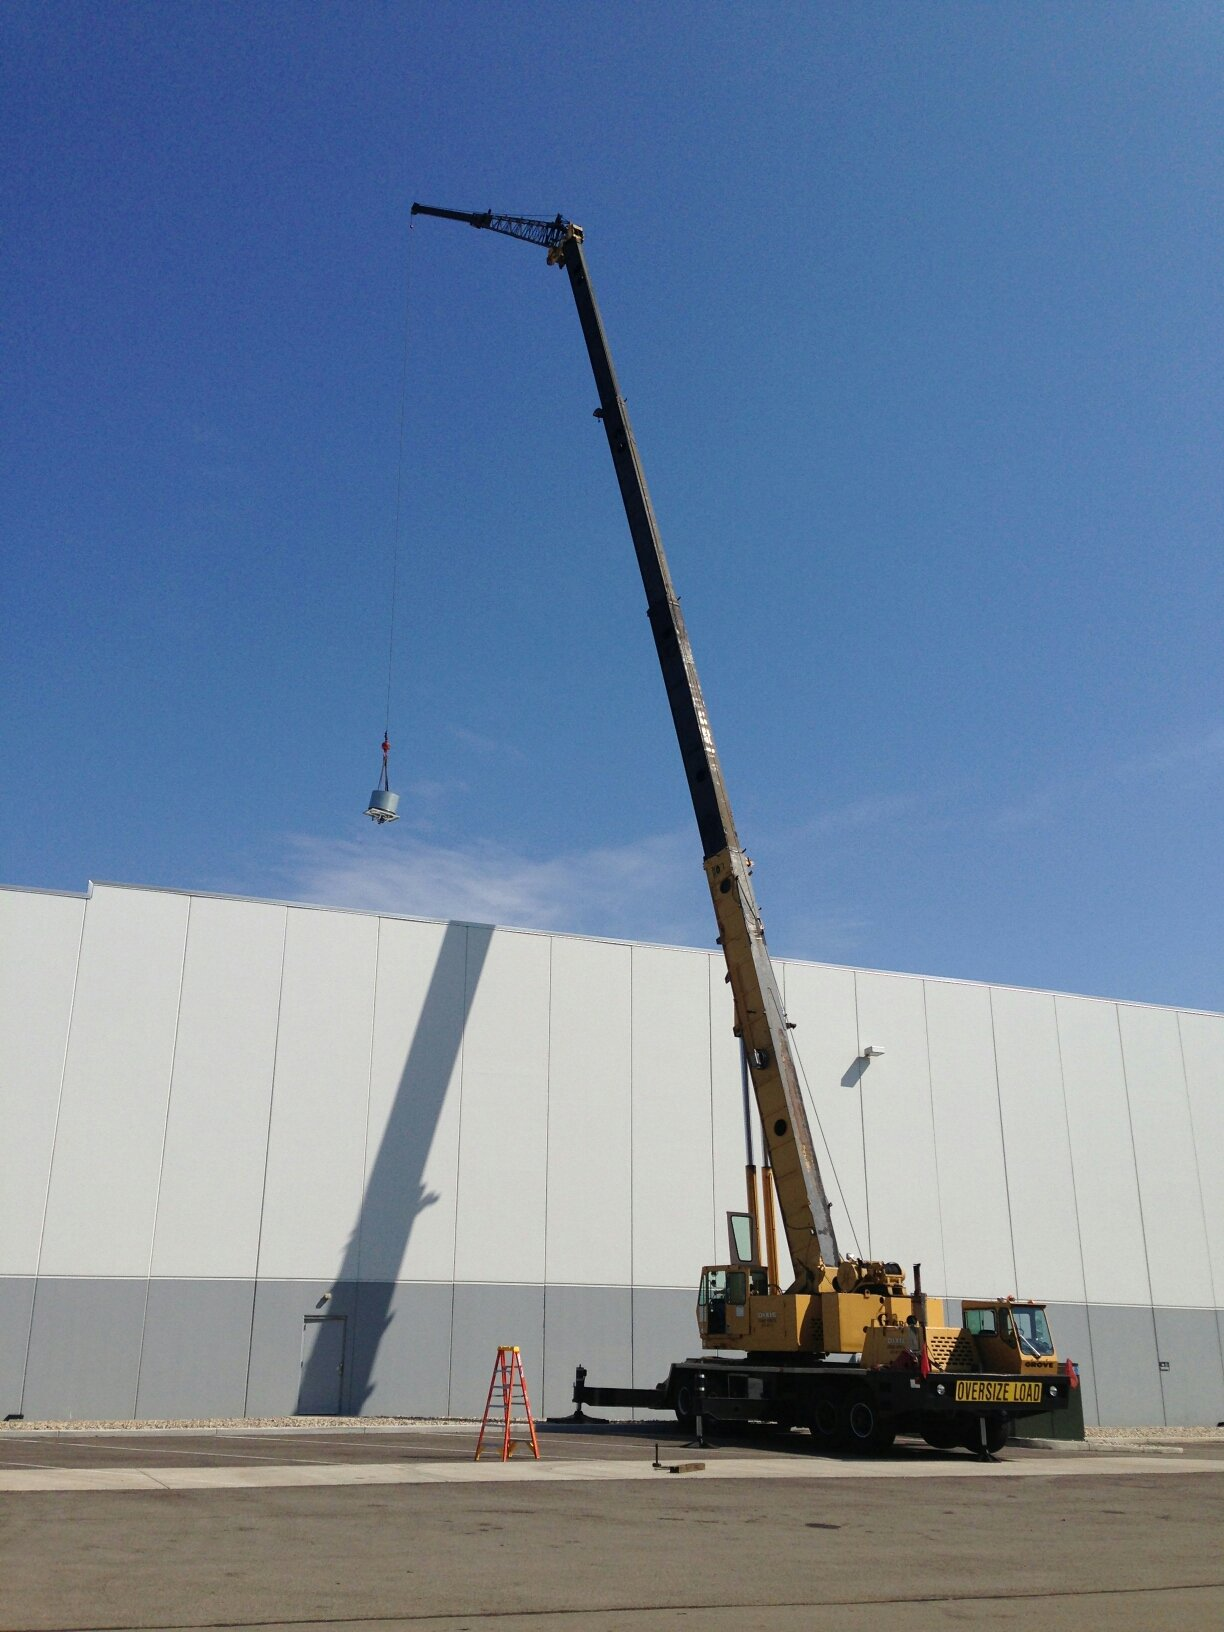 One of our cranes